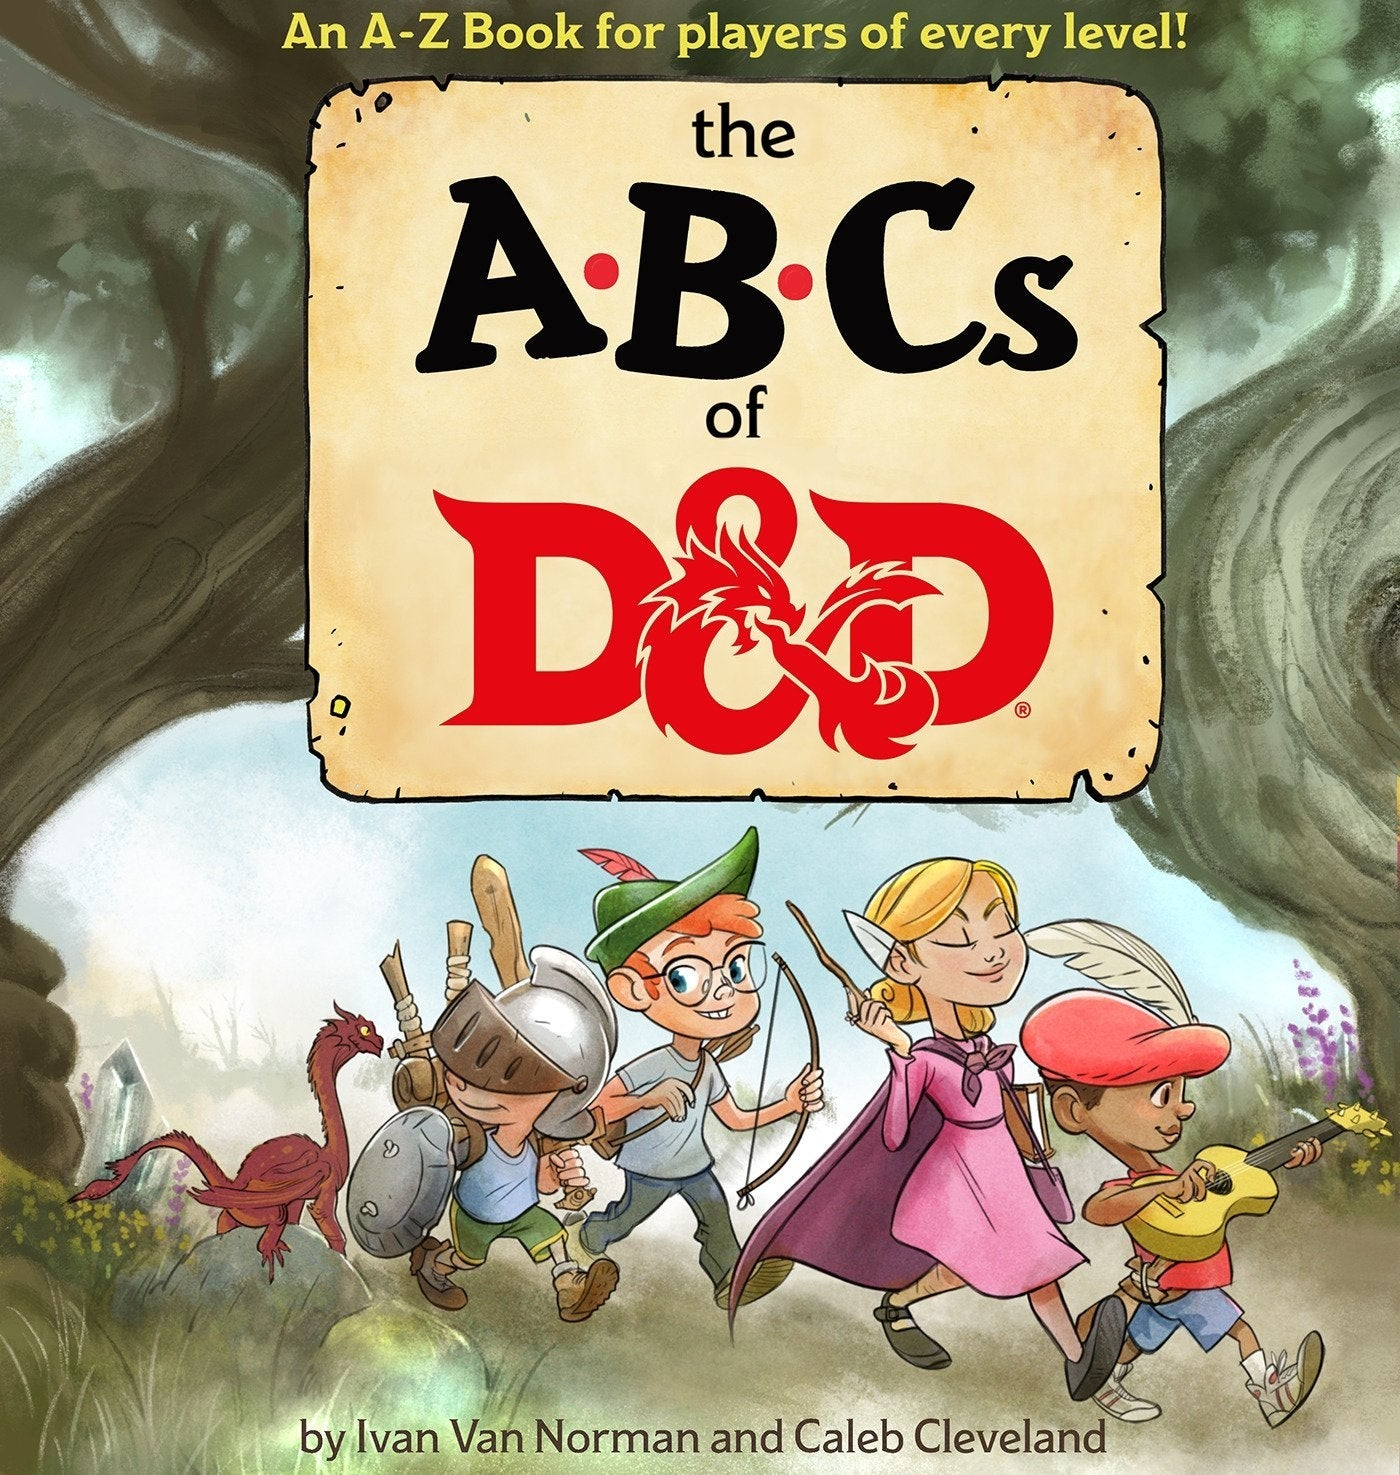 The ABCs of D&D